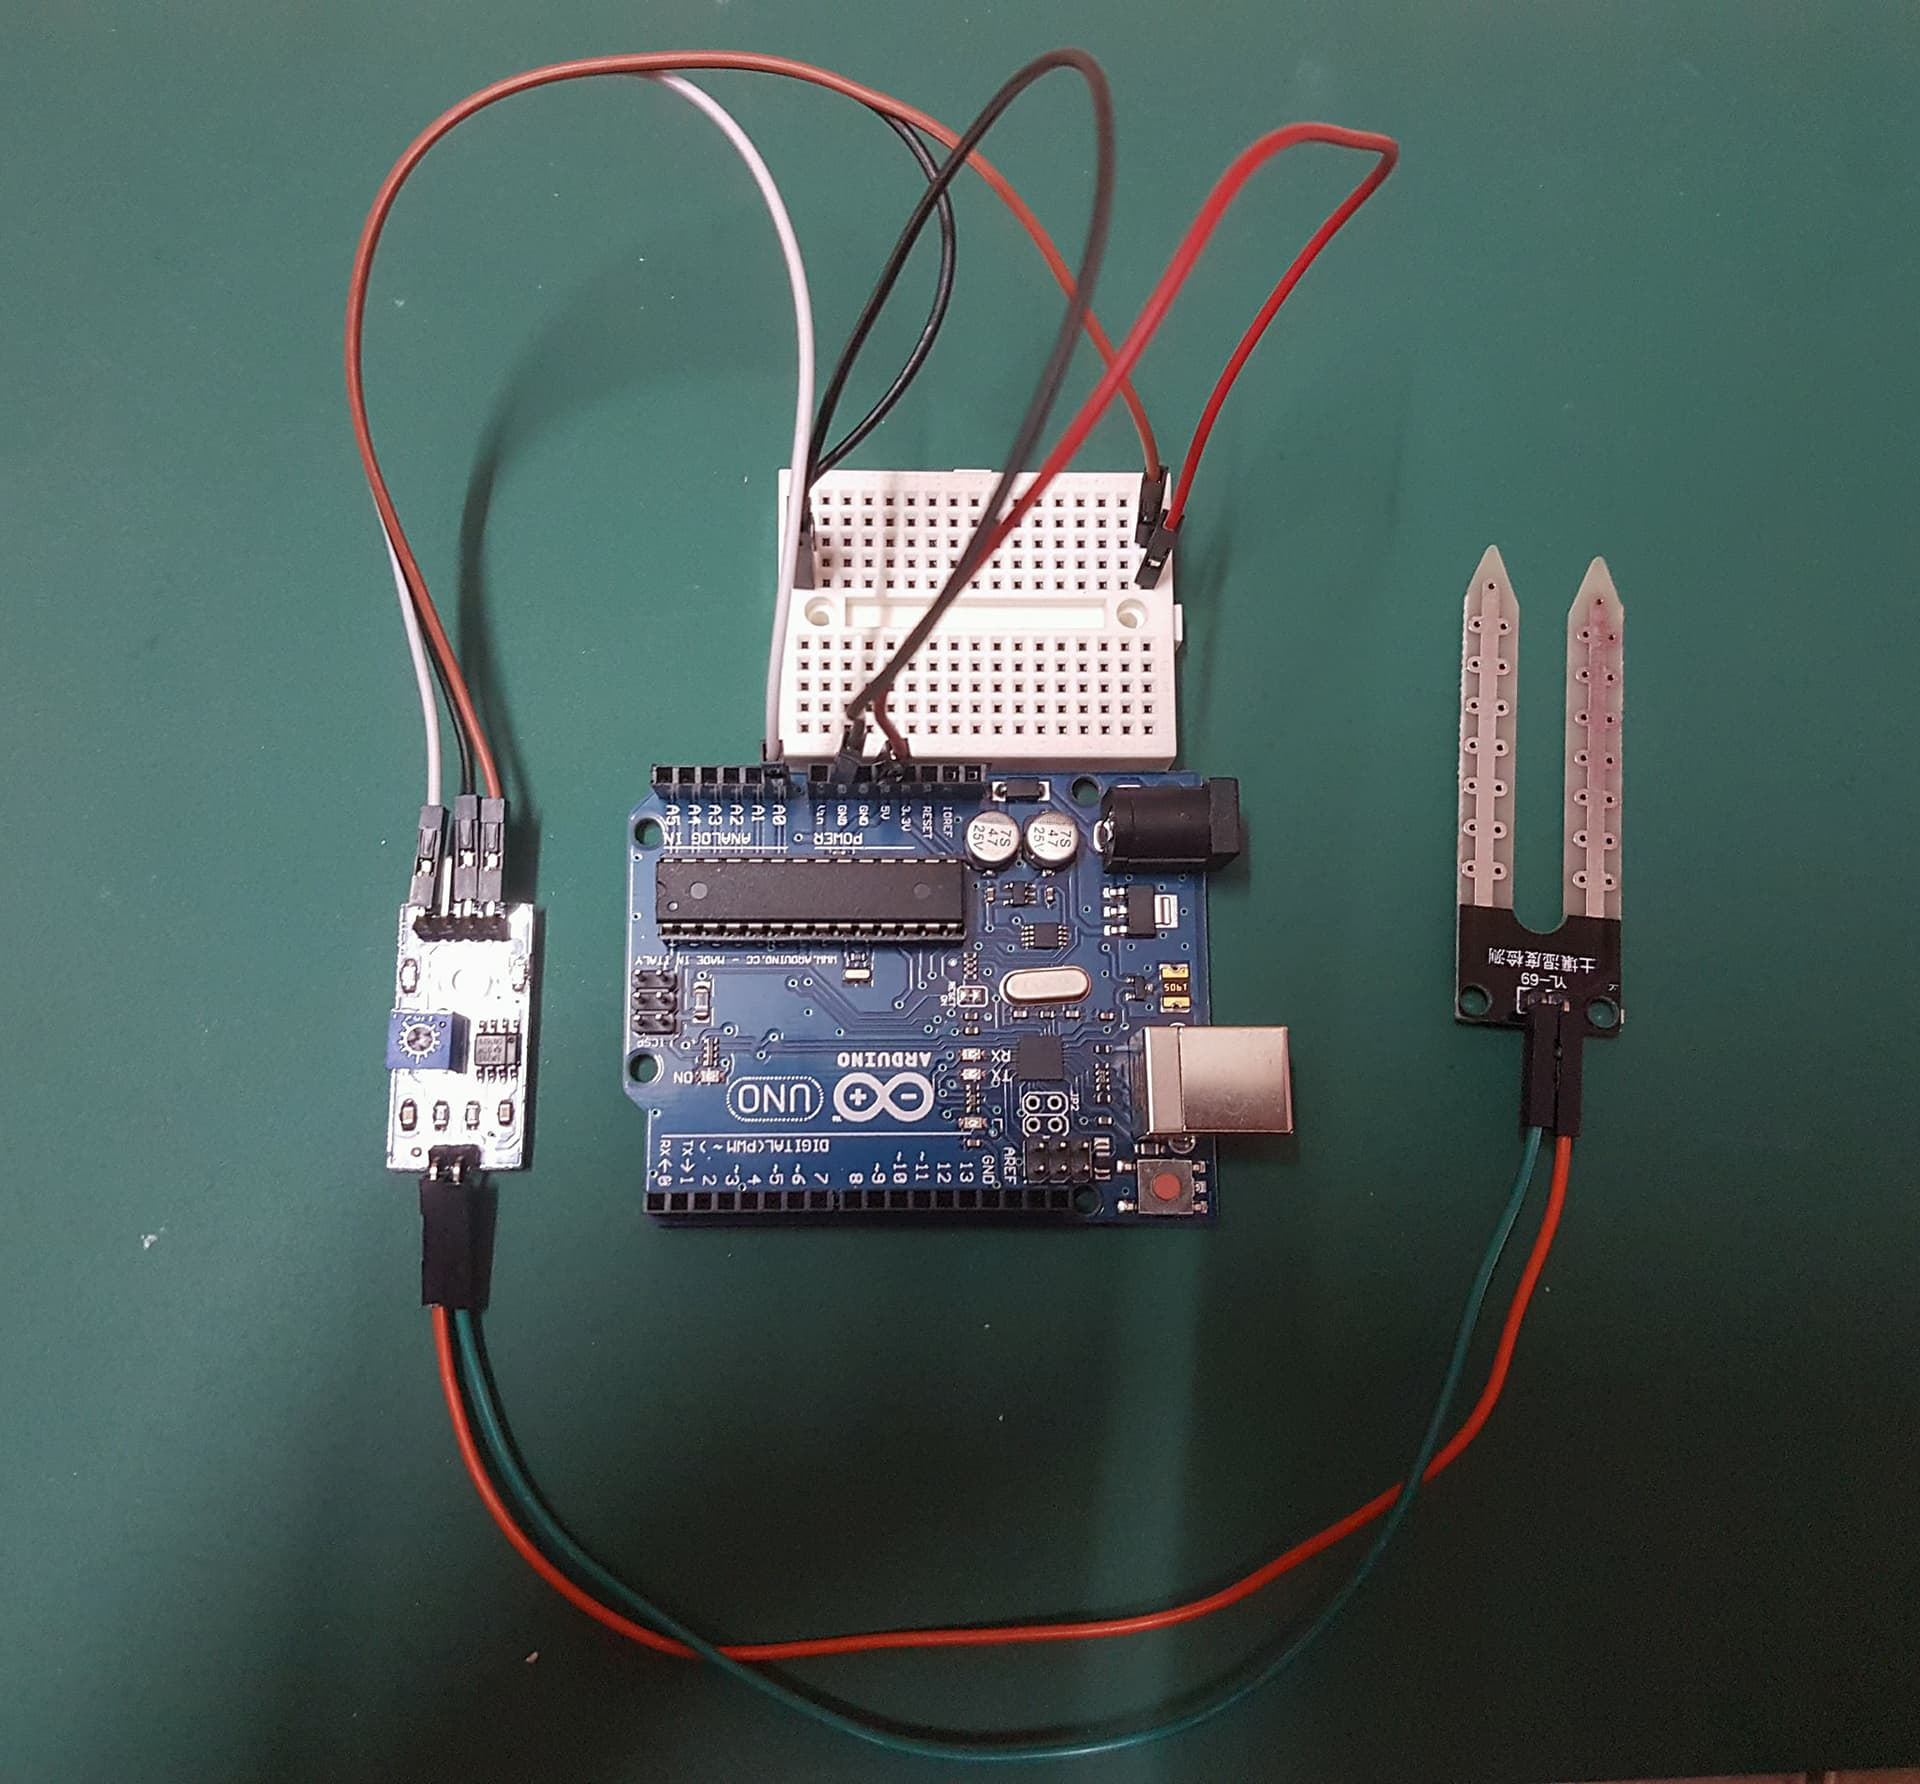 Picture of Connect the Soil Moisture Sensor to Arduino UNO